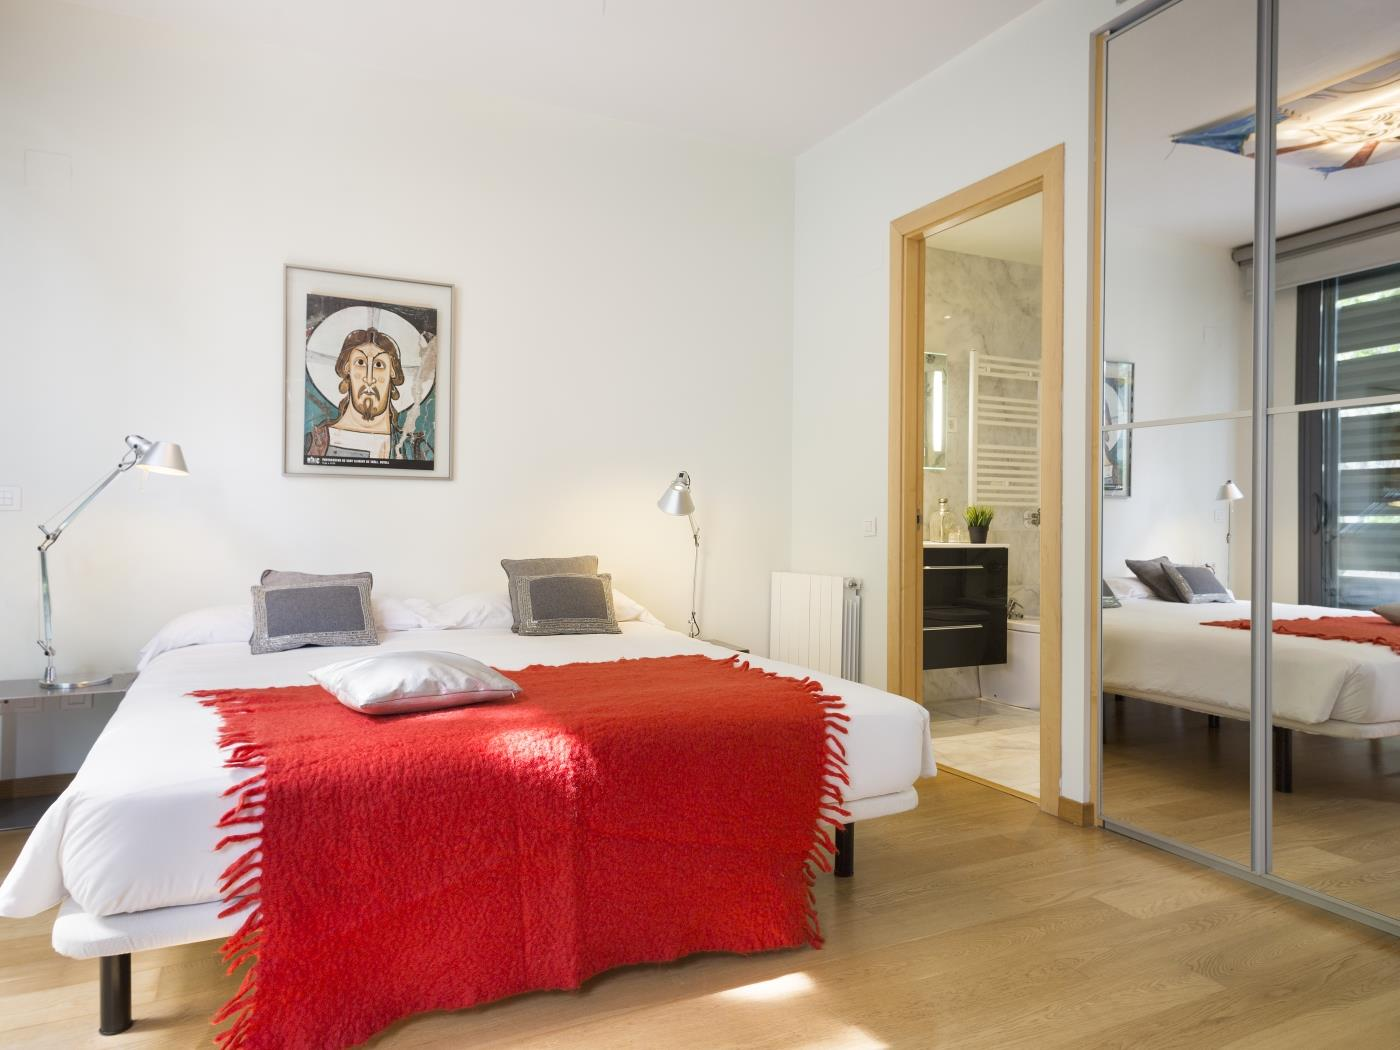 Room with private bathroom and shared swimming pool near the Ciudadela park - My Space Barcelona Apartments